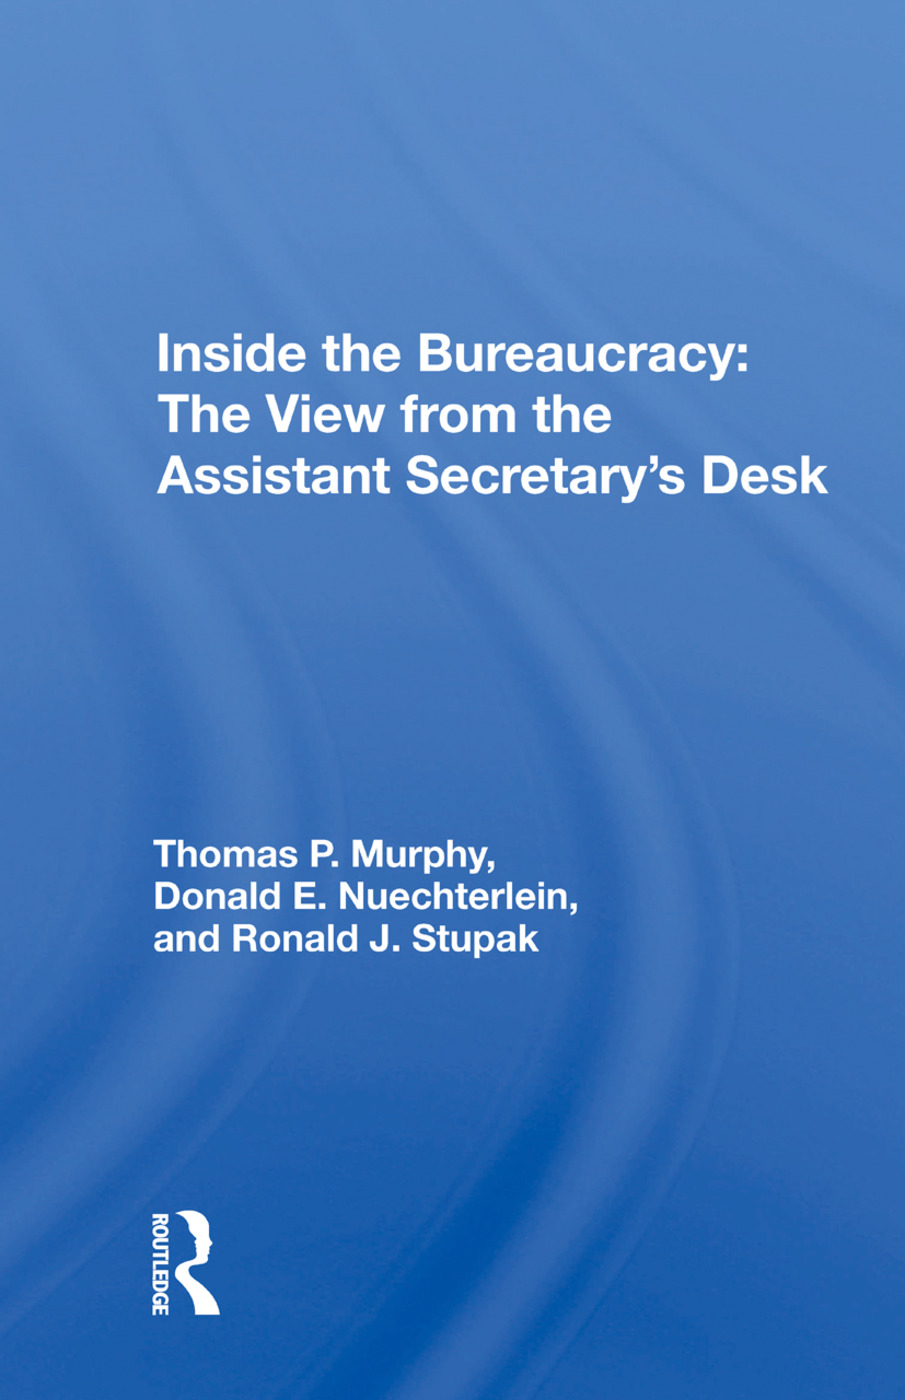 Inside The Bureaucracy: The View From The Assistant Secretary's Desk book cover